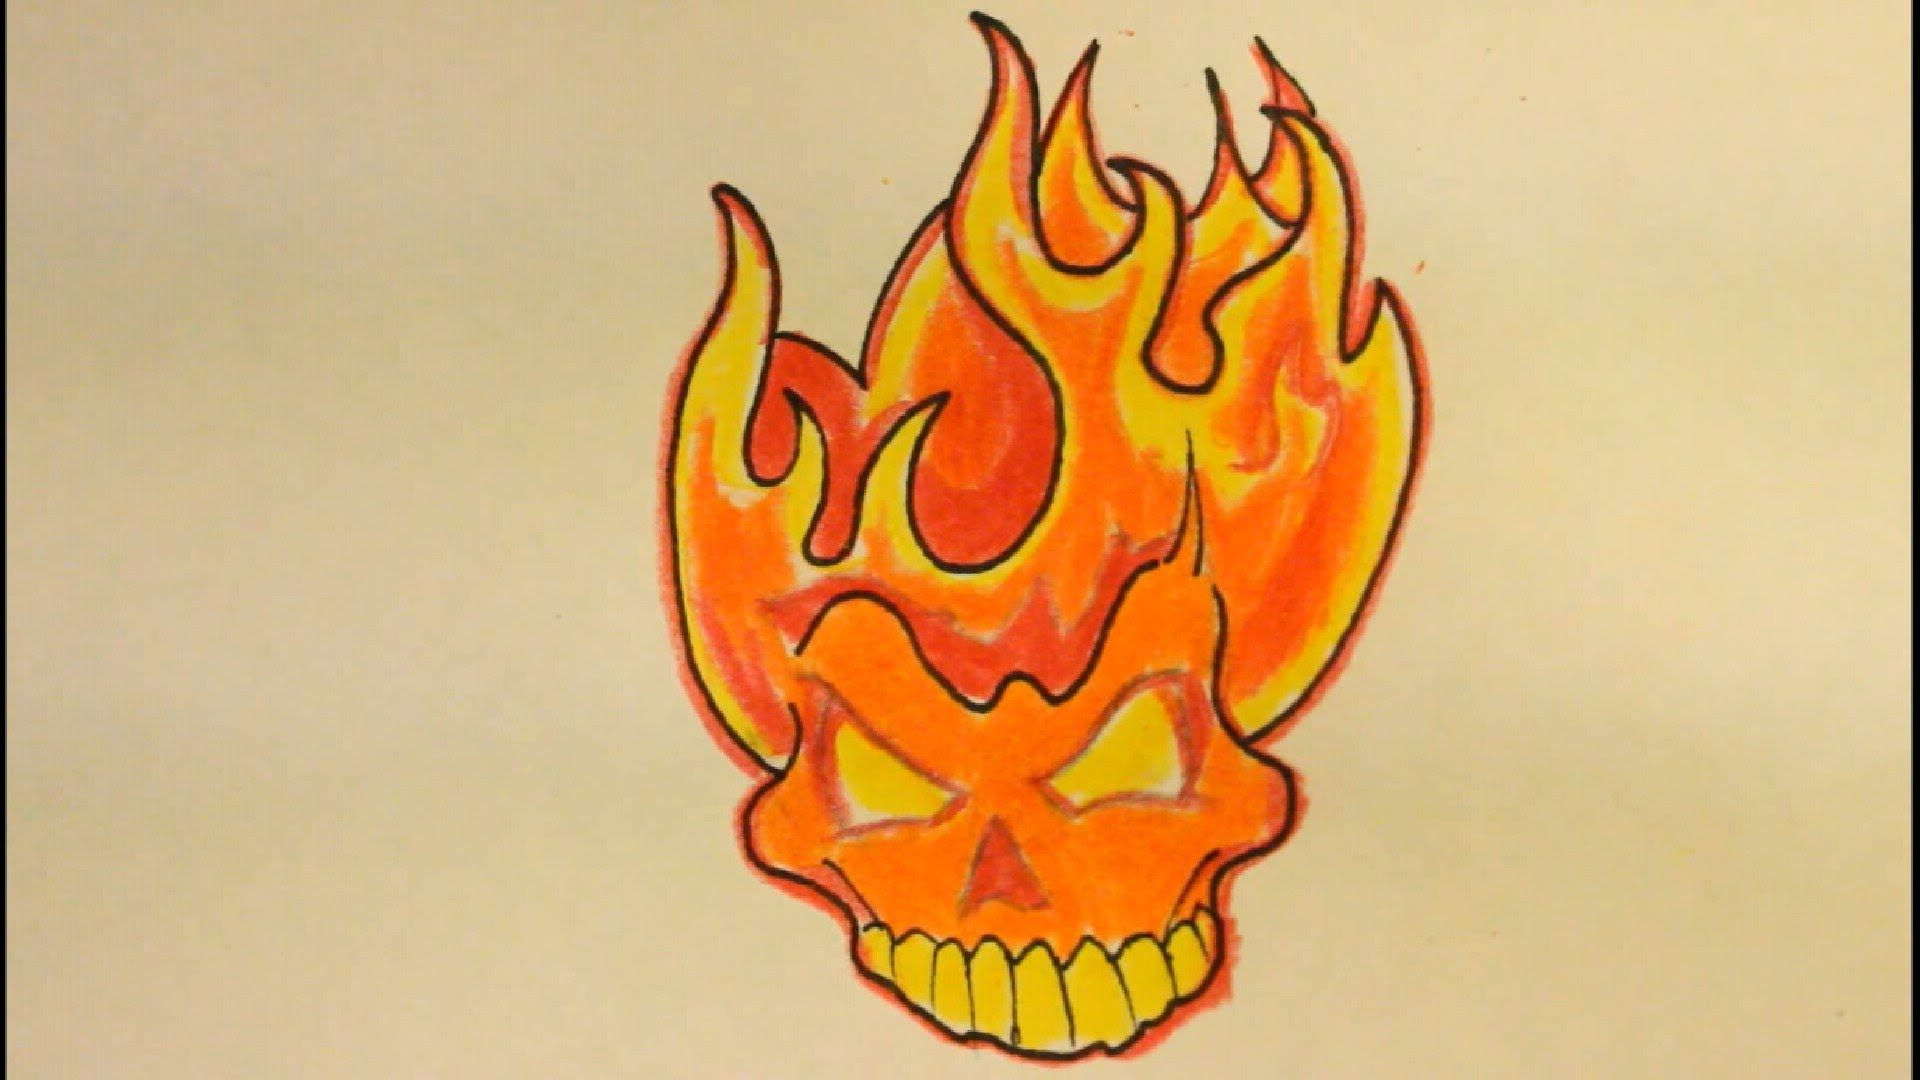 How To Draw A Skull On Fire With Flames Easy For Beginners Fire Drawing Skulls Drawing Drawings